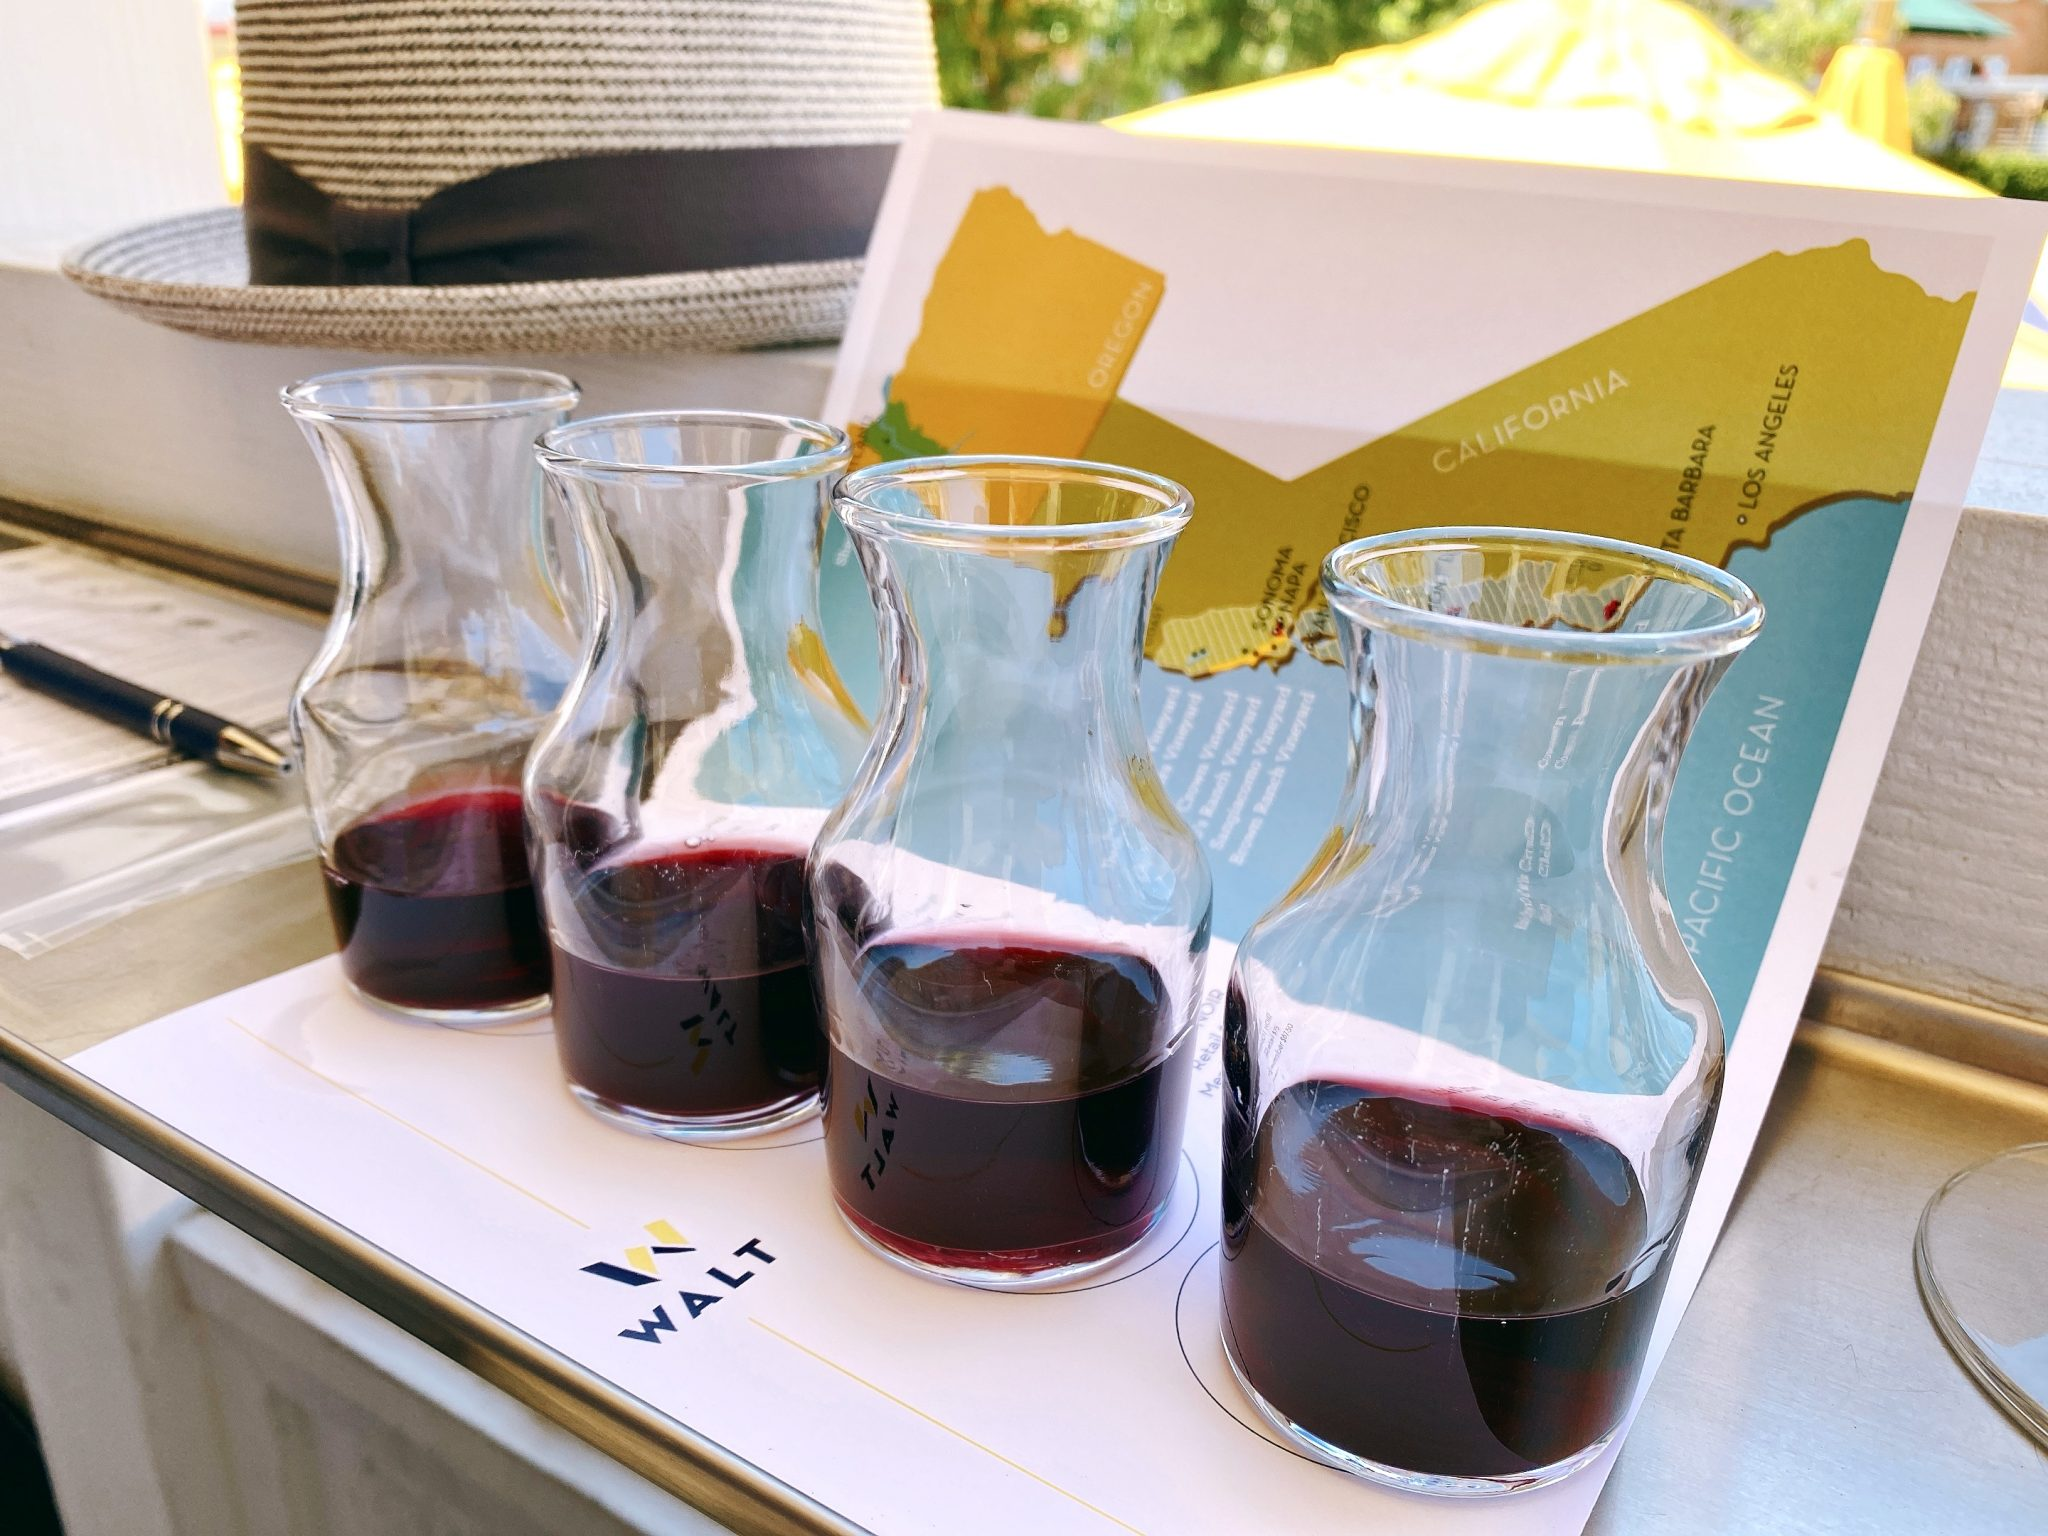 WALT Cellars offers a variety of pinot noir wines at the Downtown Napa tasting room.